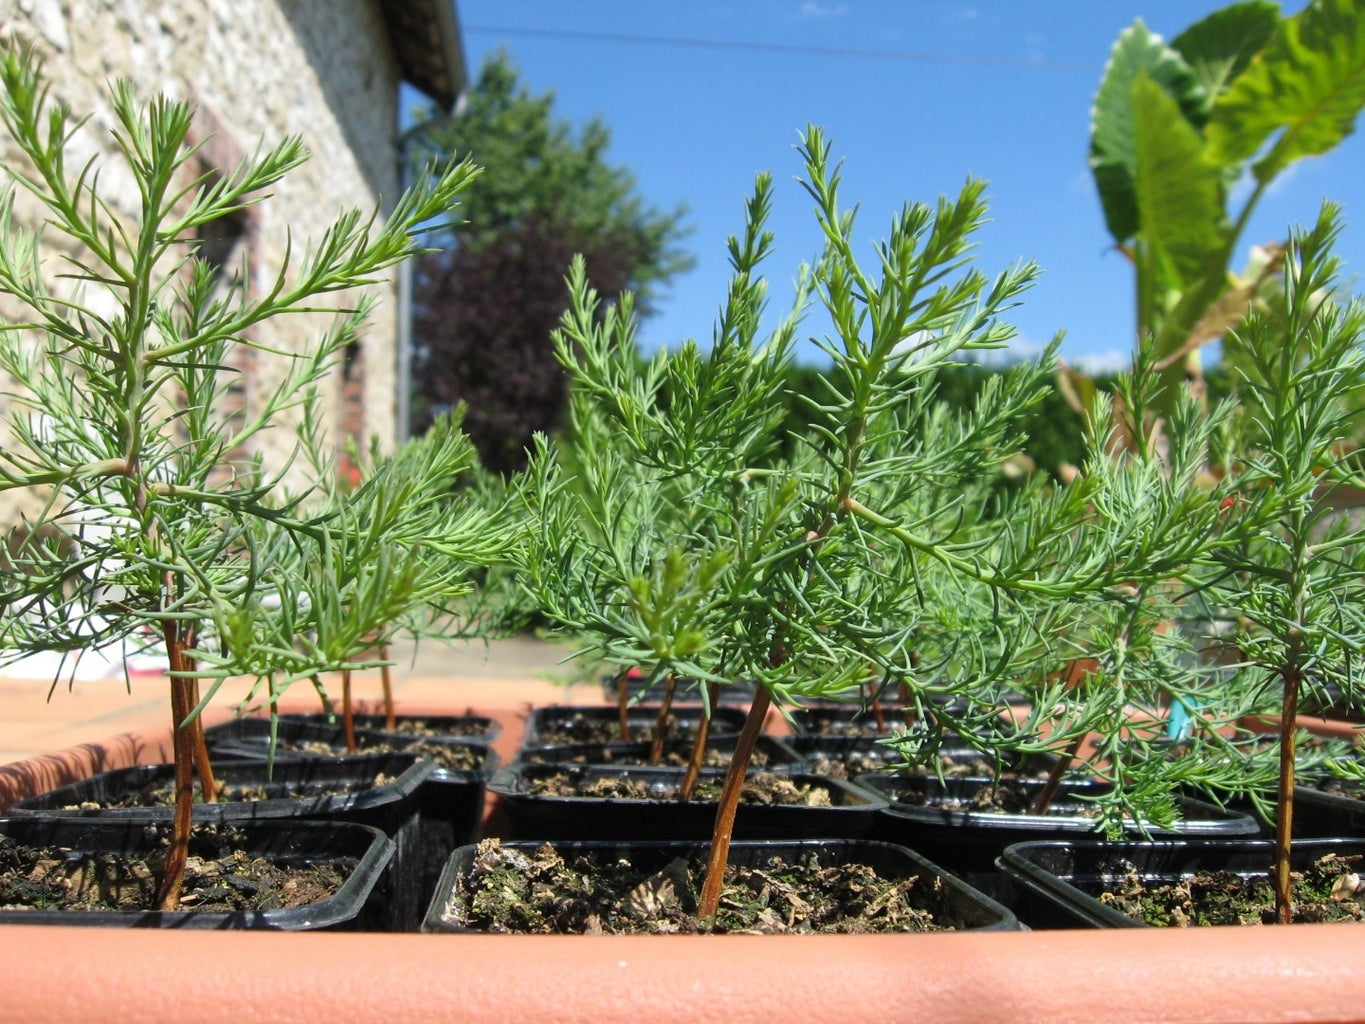 Expose Seedlings to More Light